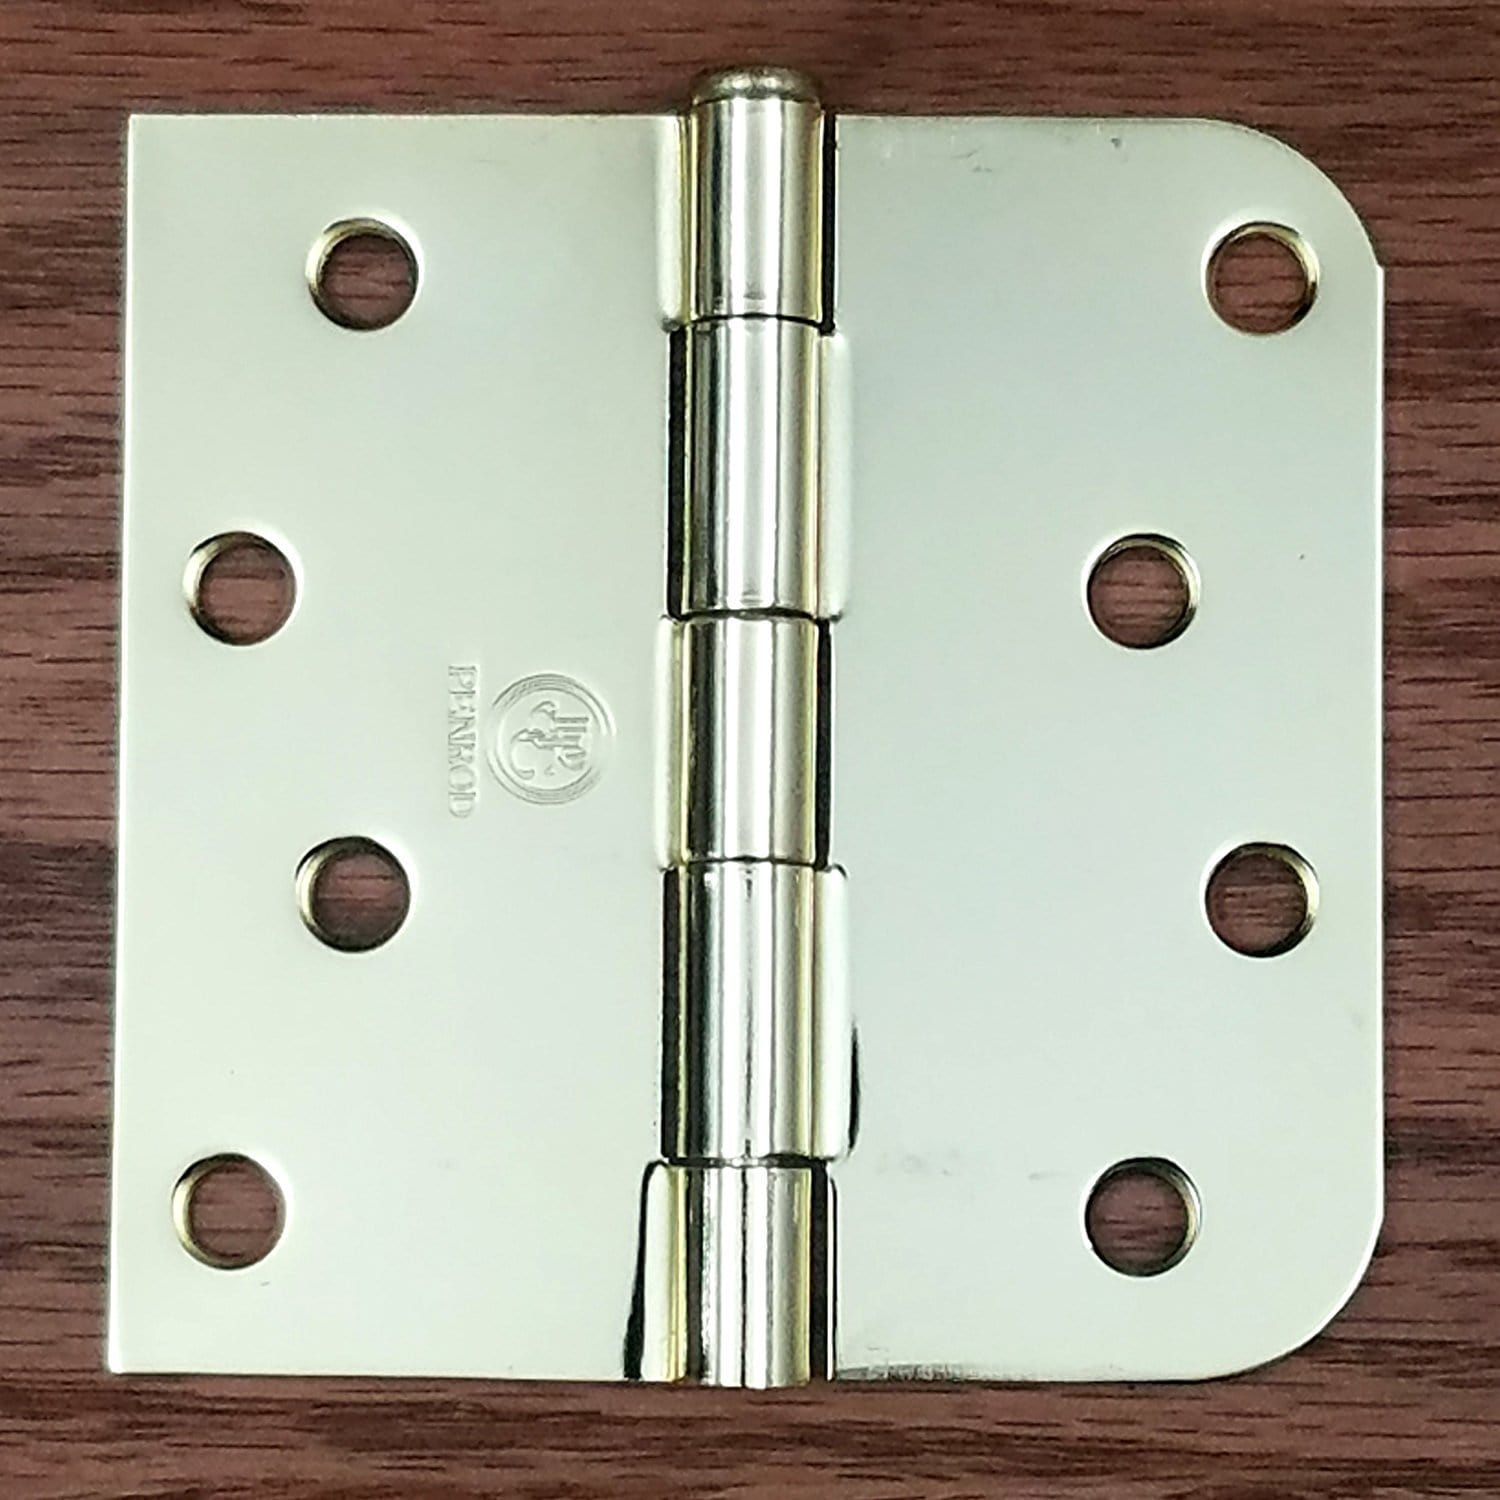 Ball Bearing Hinge Outlet Polished Brass Door Hinges 3.5 Inch with 1//4 Inch Radius 2 Pack